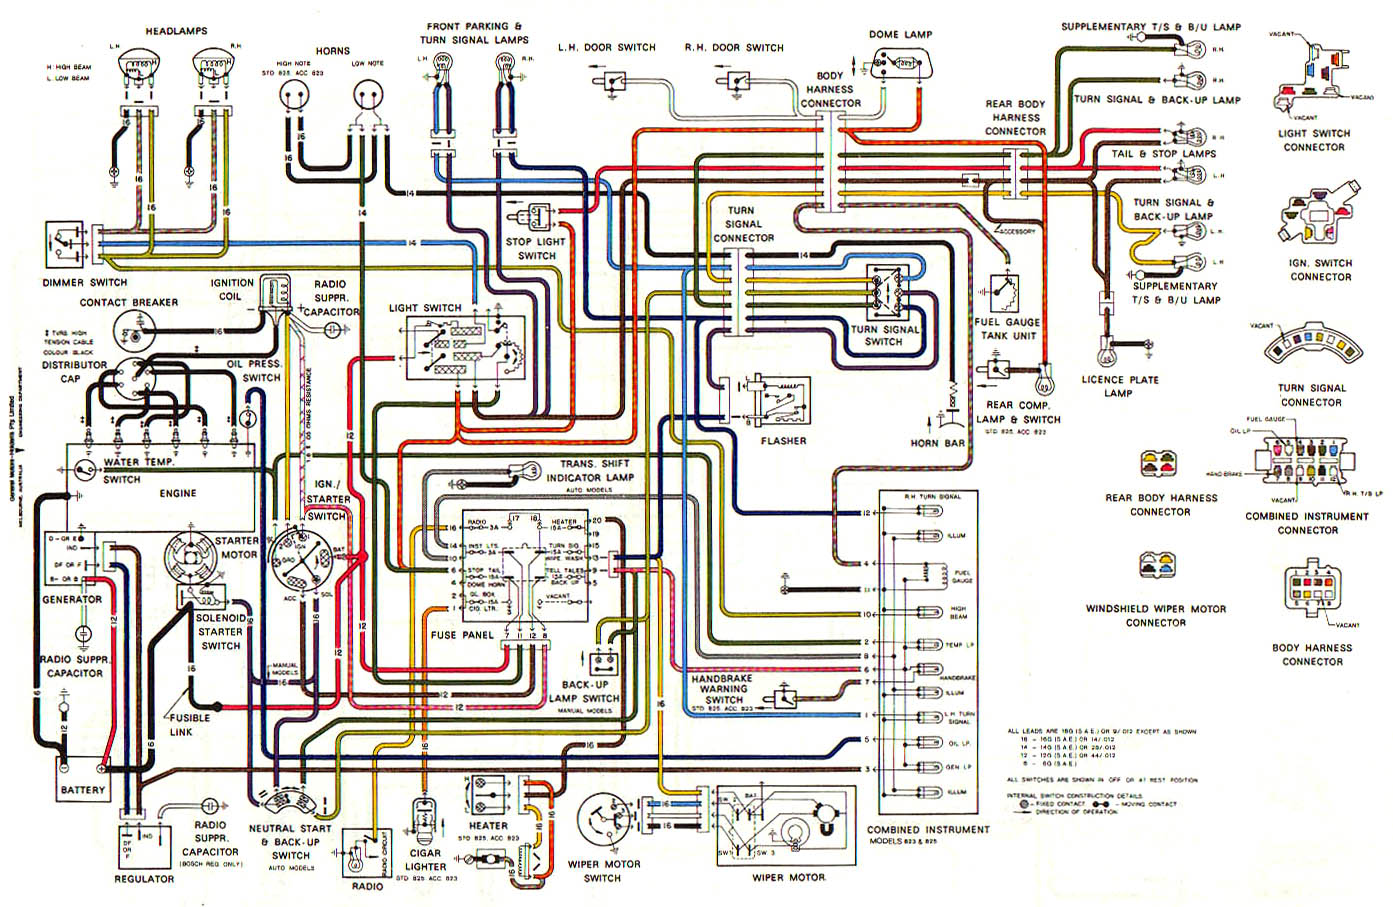 StandardWiringHarness vx ls1 alternator wiring diagram efcaviation com Wiring Harness Diagram at gsmx.co